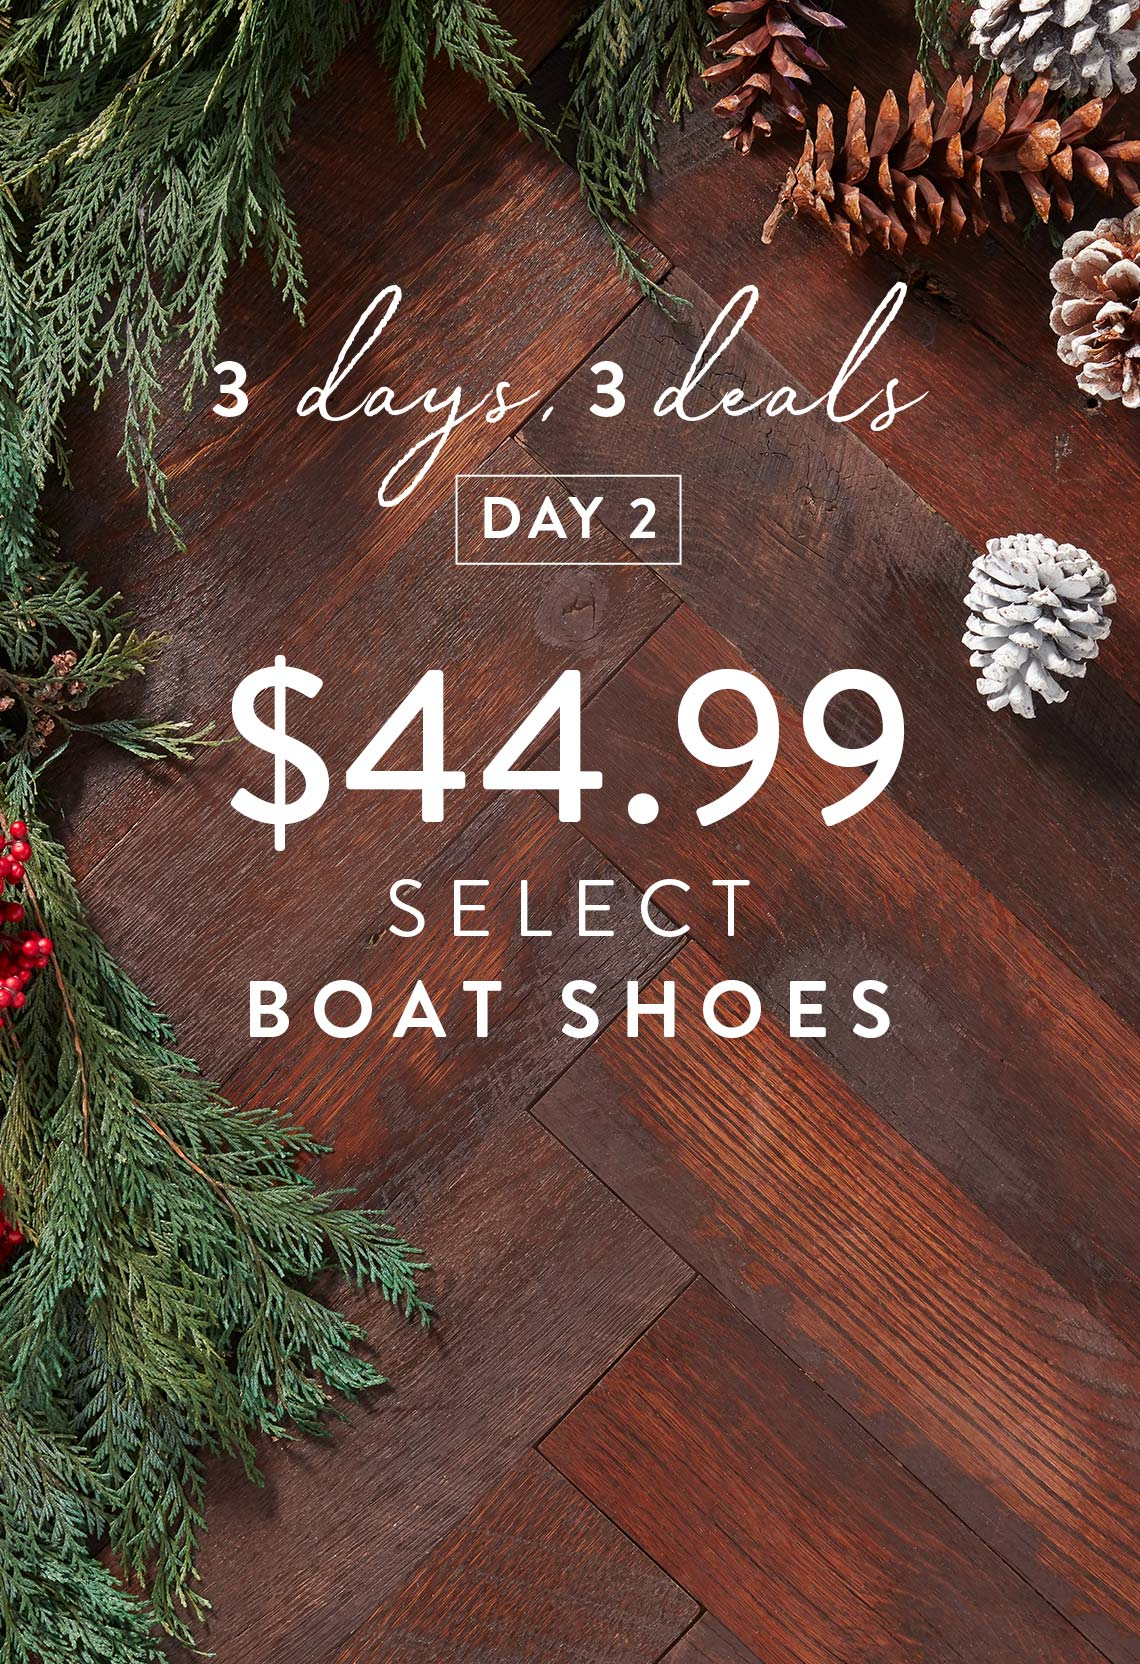 3 days, 3 deals. Day 1. $44.99 Select Boat Shoes.